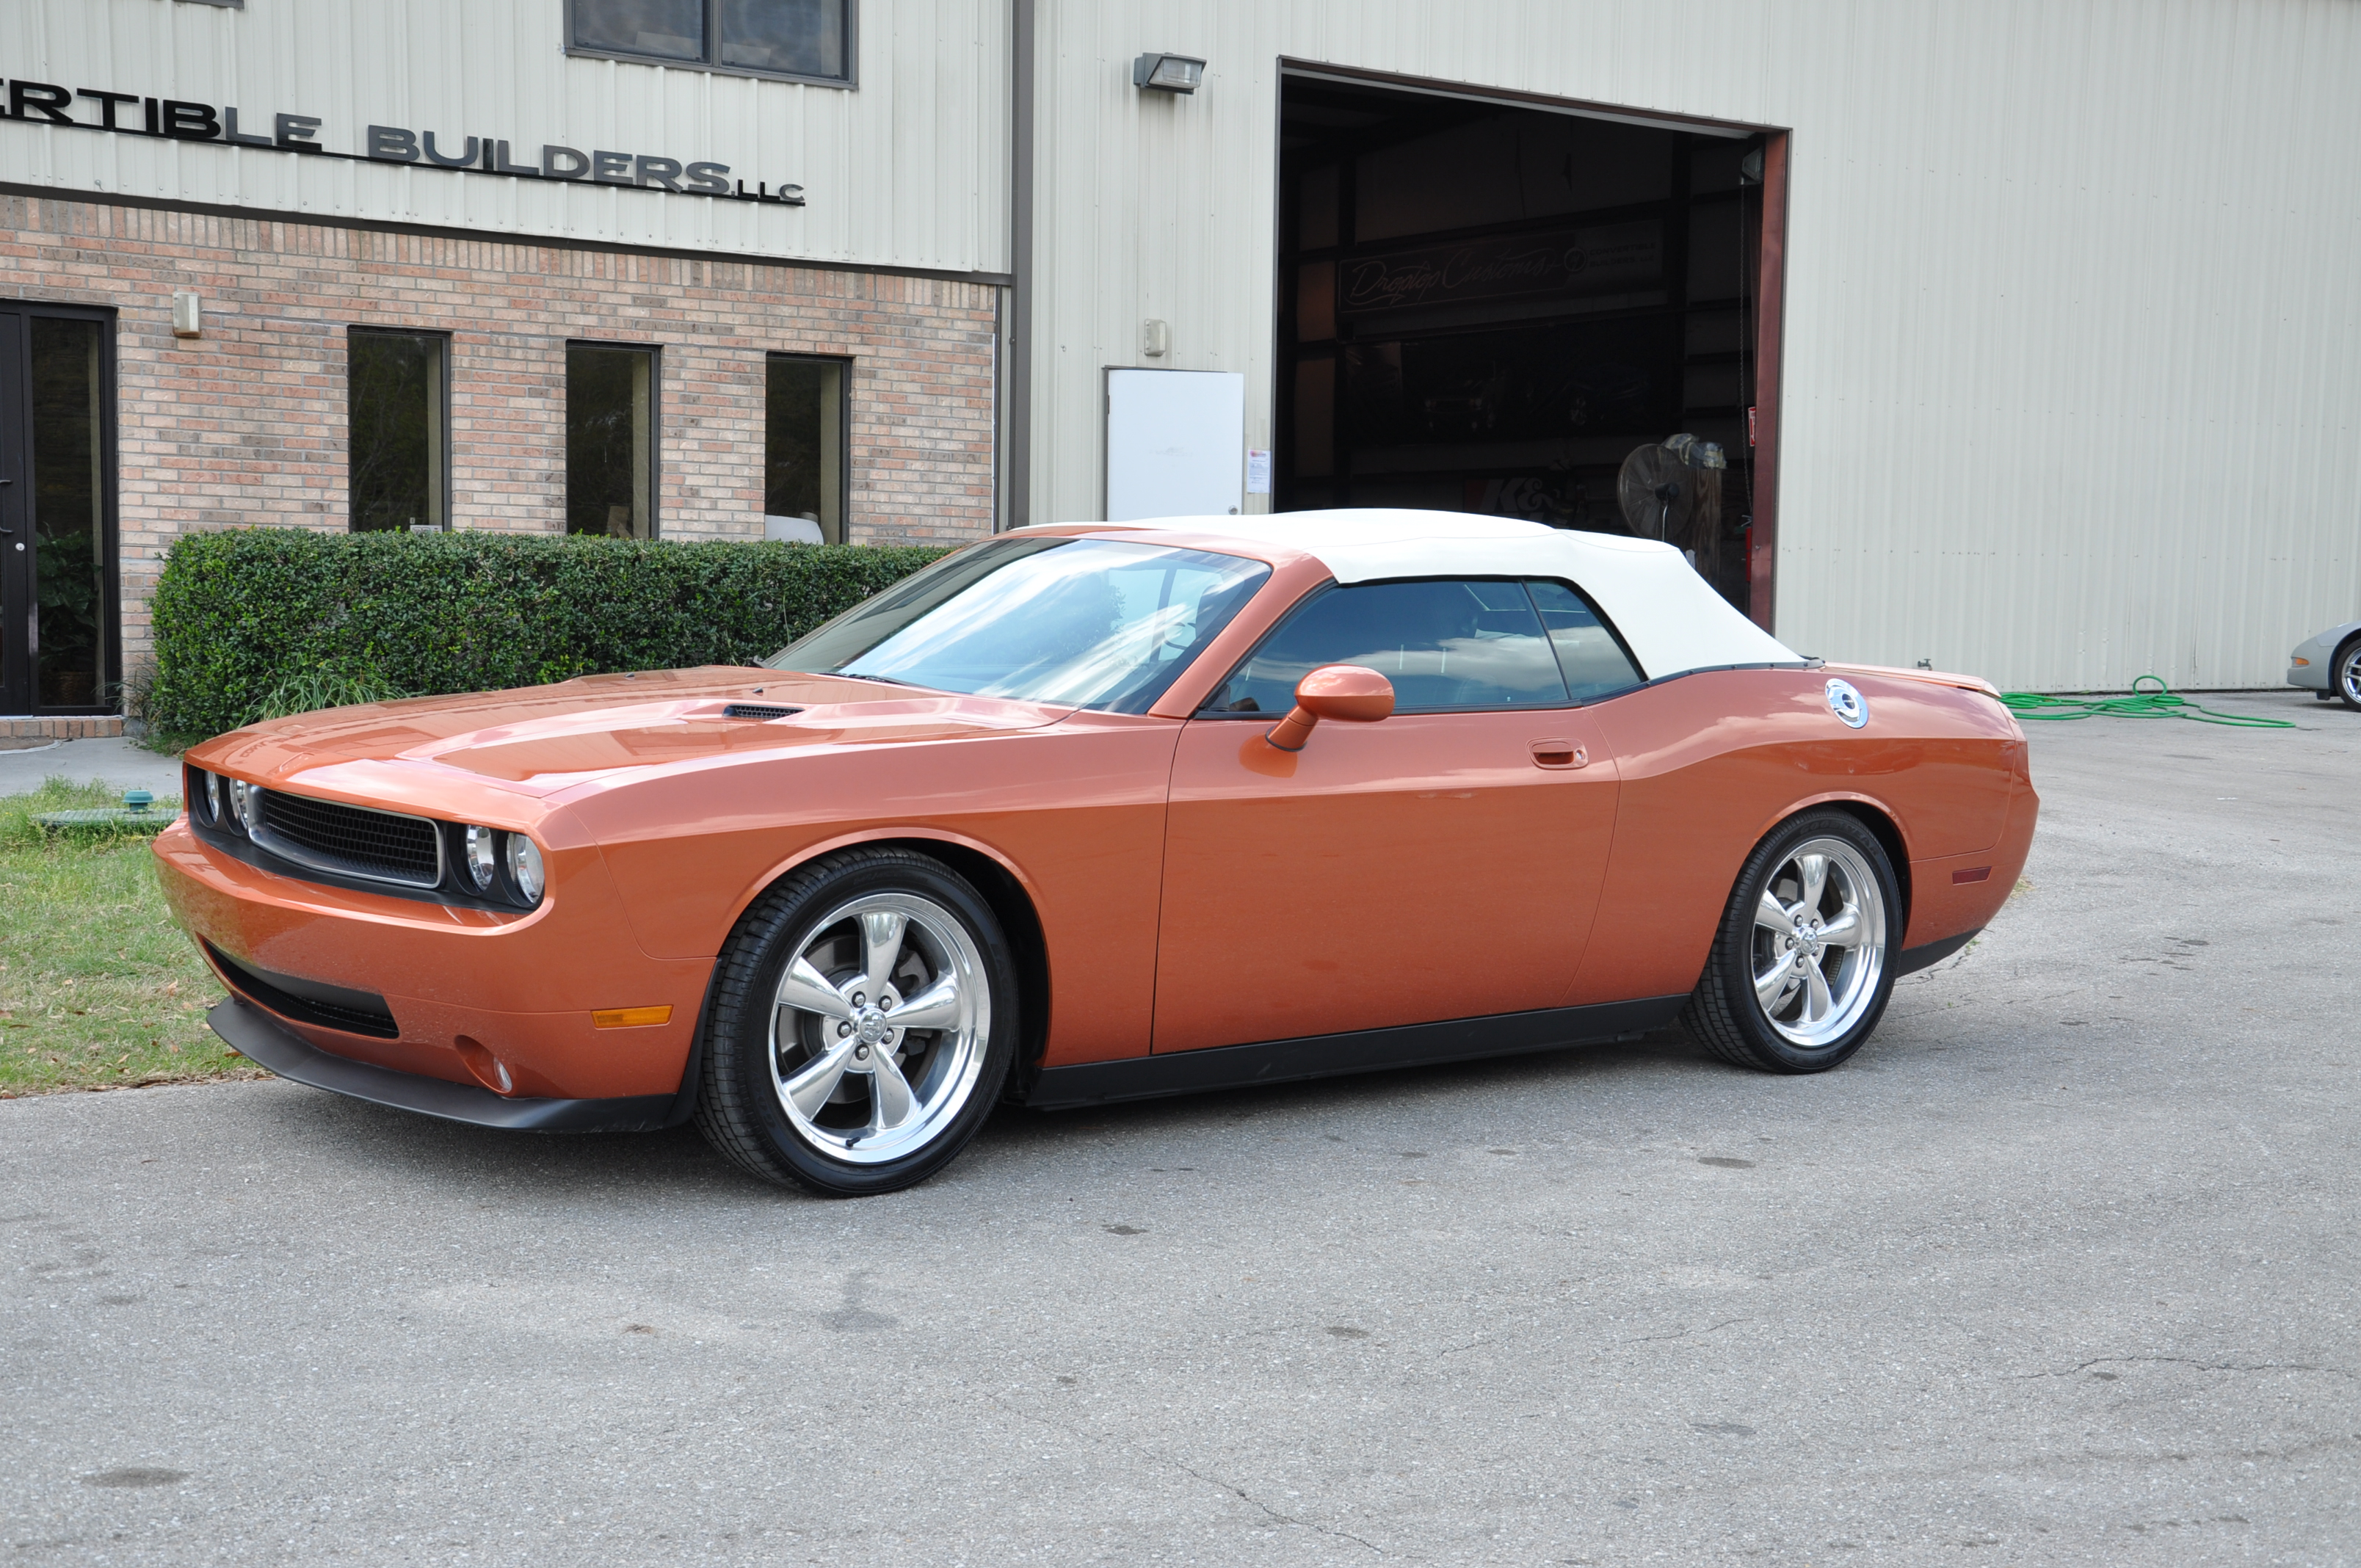 Burnt Orange Challenger 3